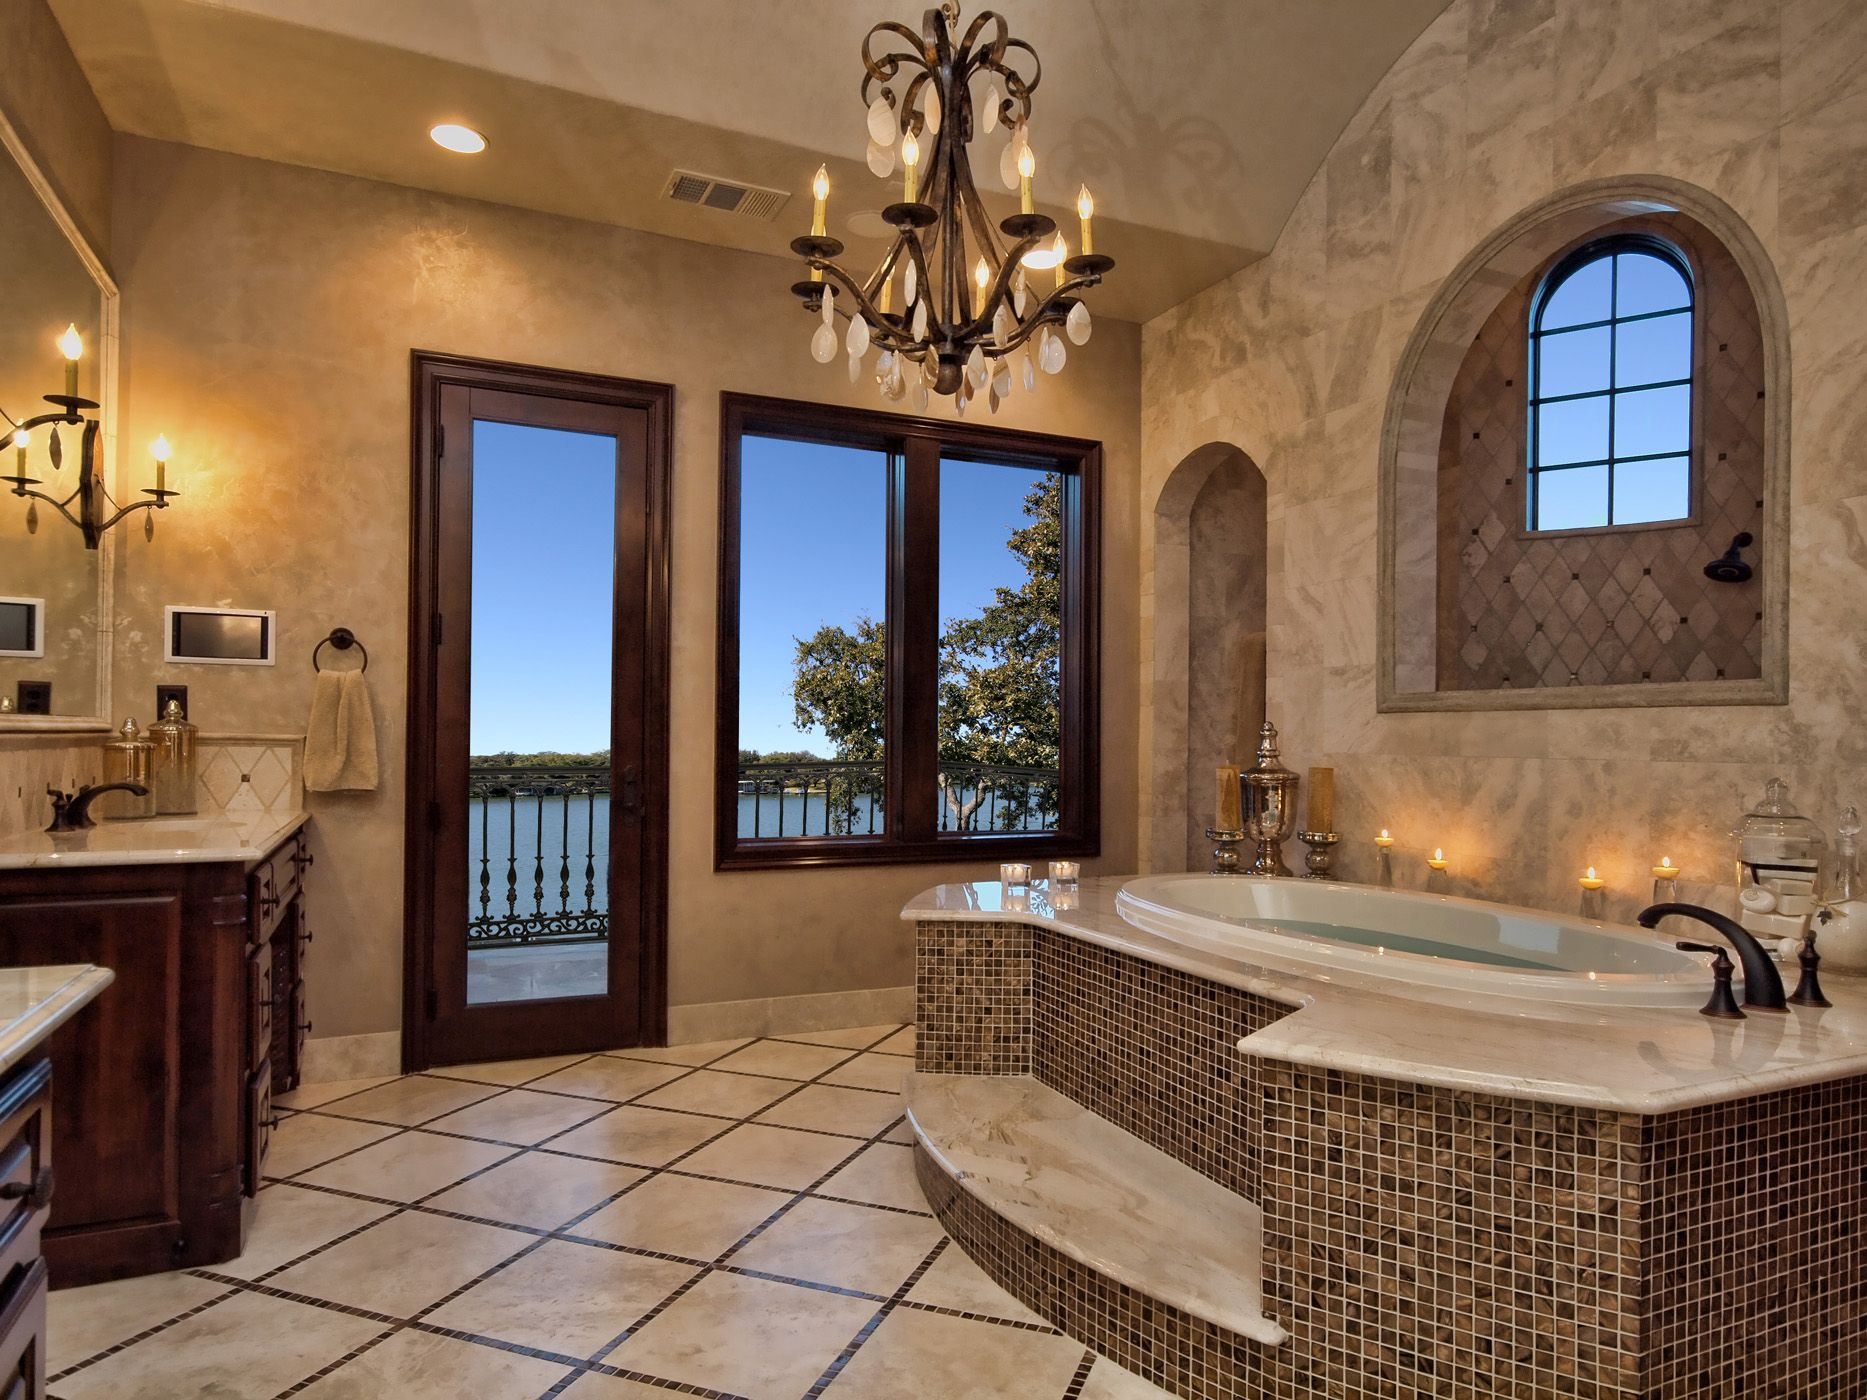 Beautiful traditional bathrooms - 21 Luxury Mediterranean Bathroom Design Ideas